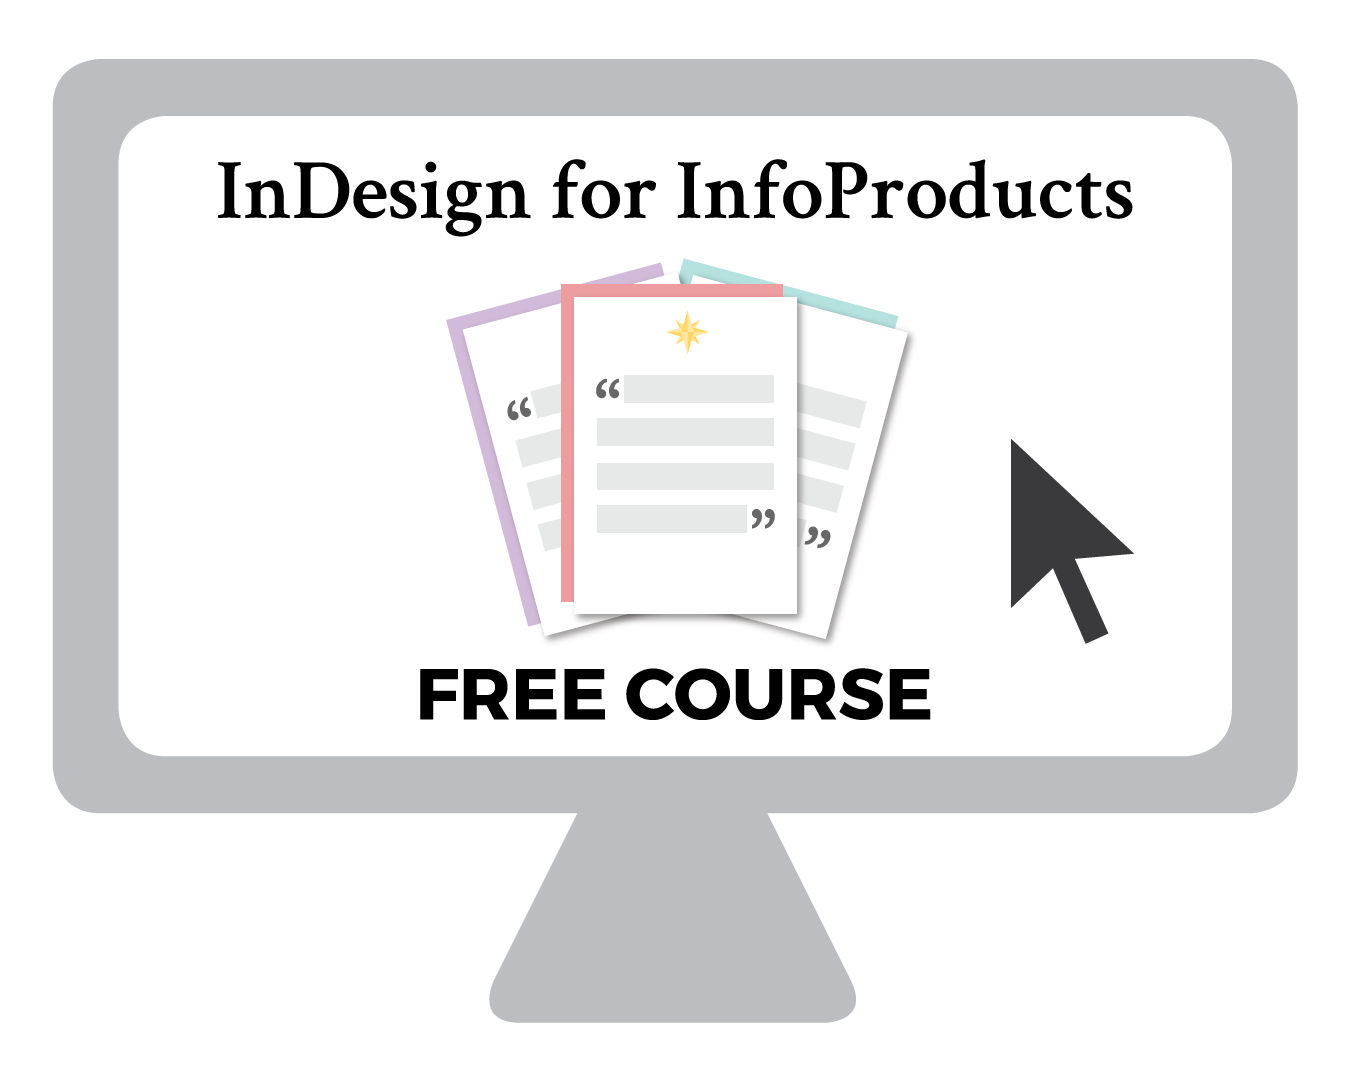 image-indesign-course.png